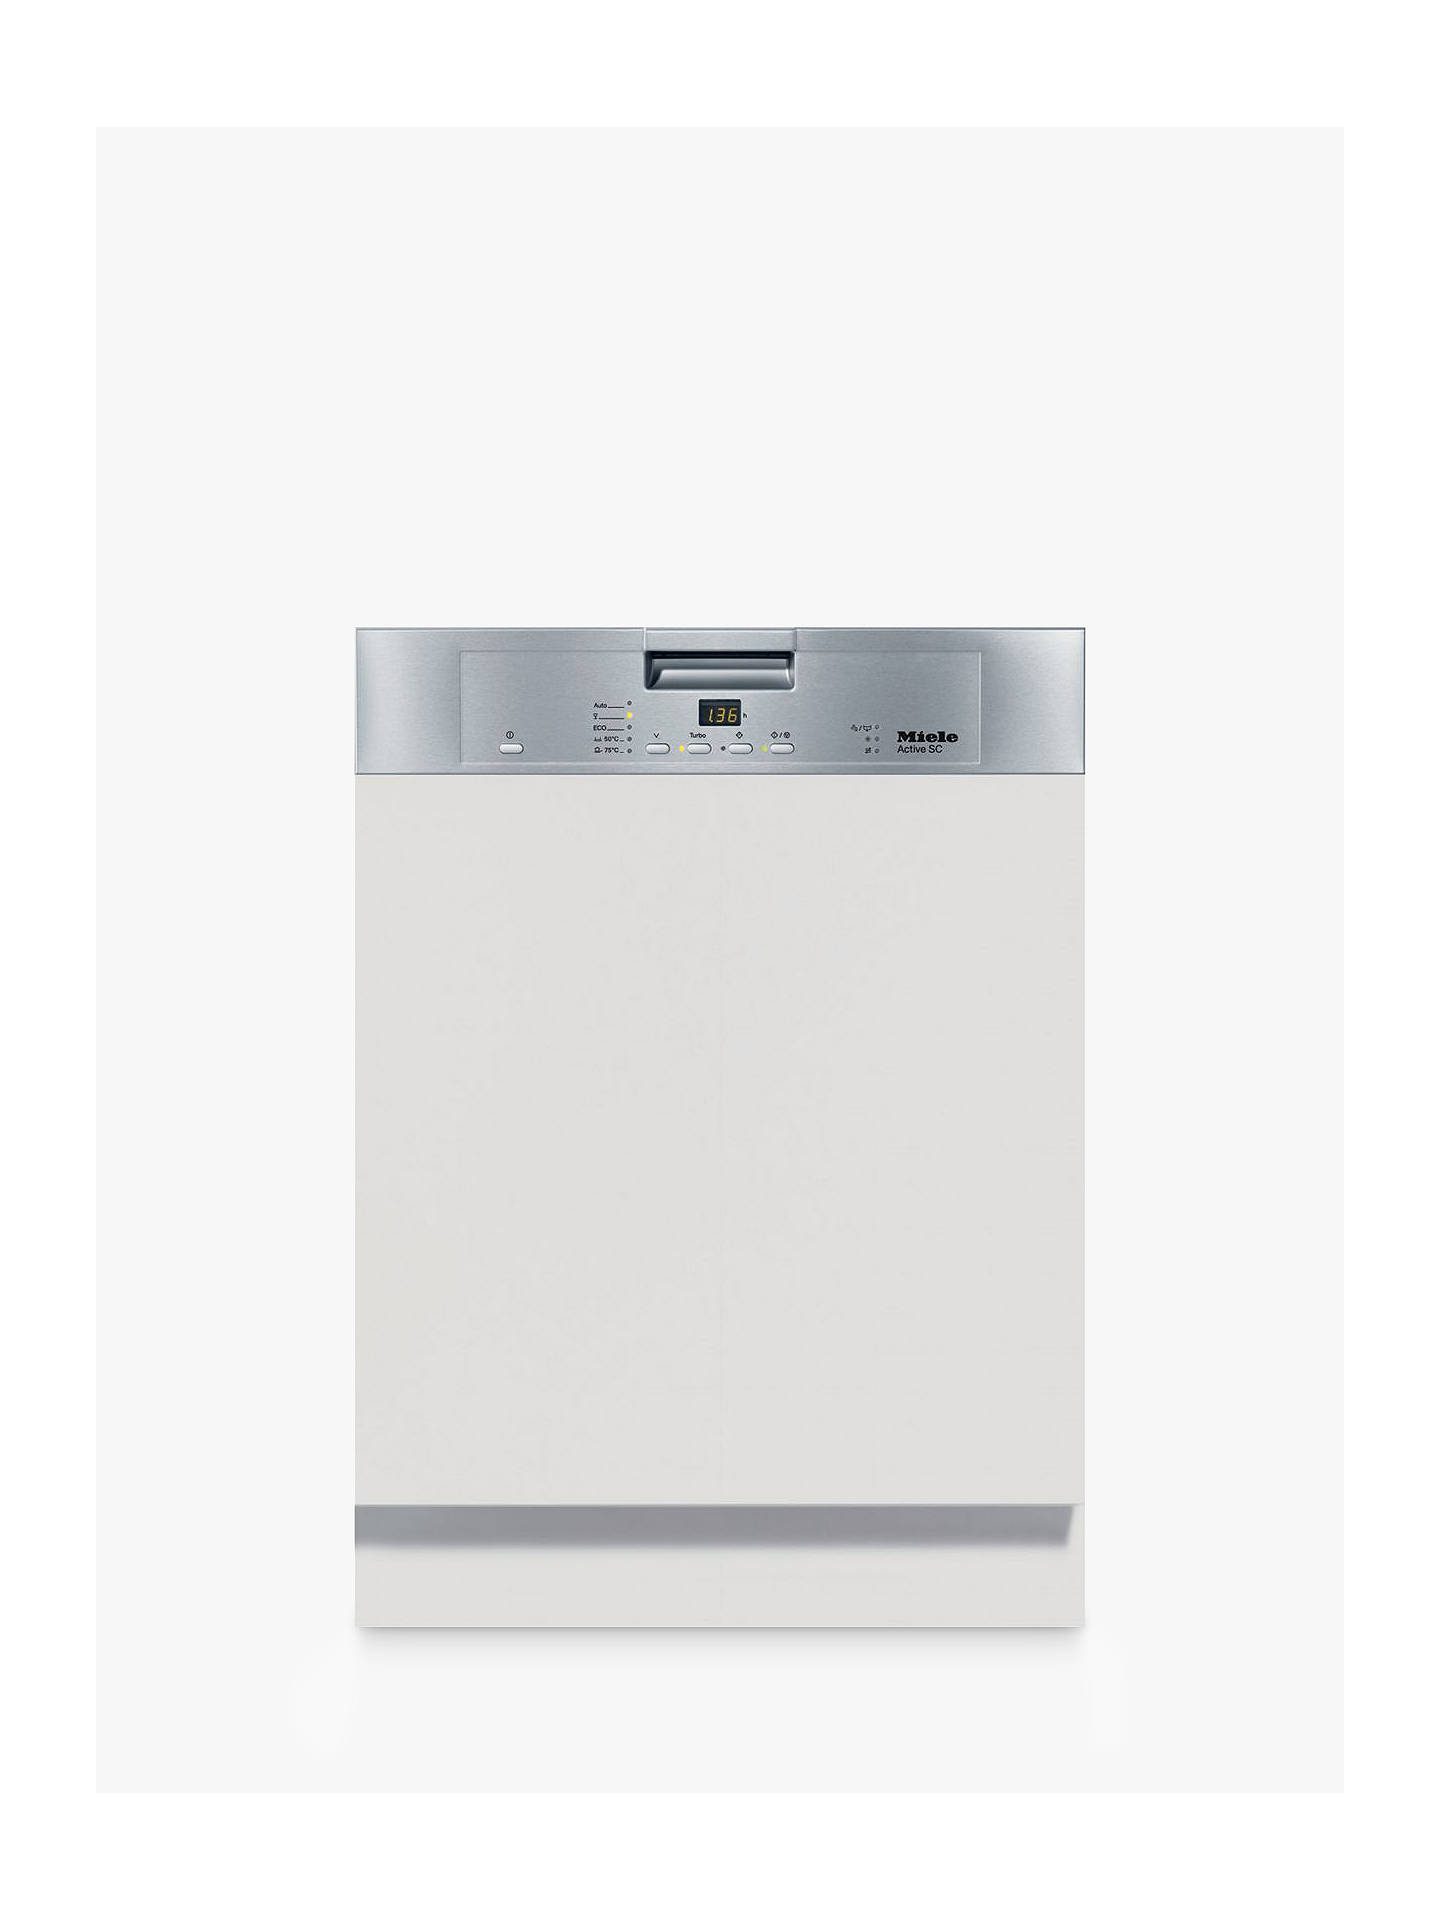 BuyMiele G4203SCi Active Semi Integrated Dishwasher, Clean Steel Online at johnlewis.com